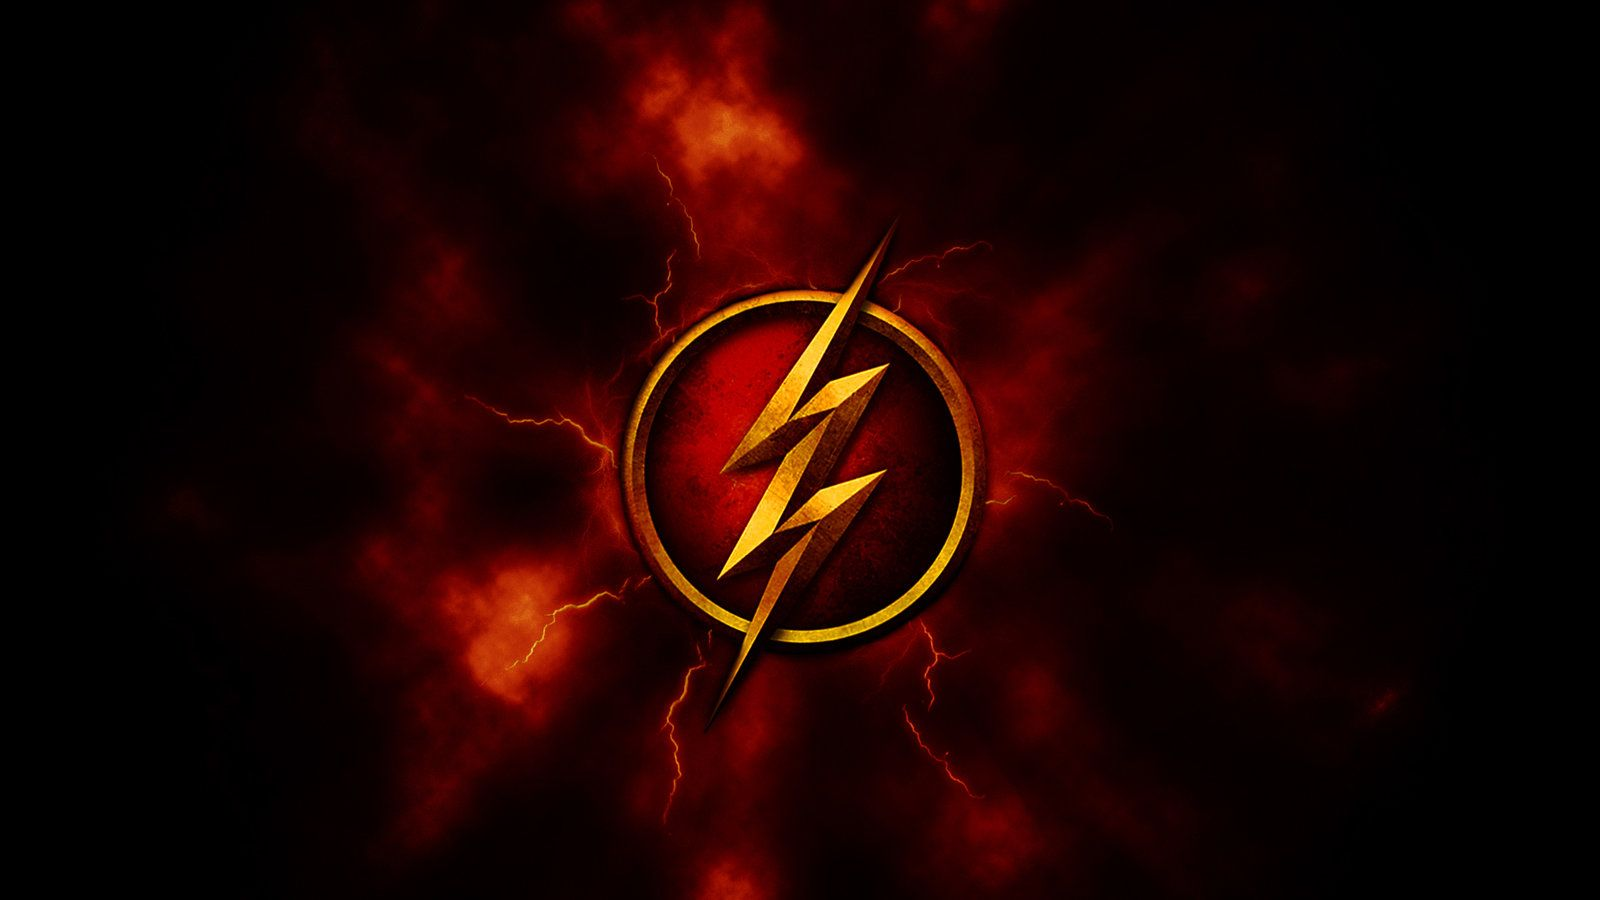 flash wallpaper hd resolution is cool wallpapers | wallpapers